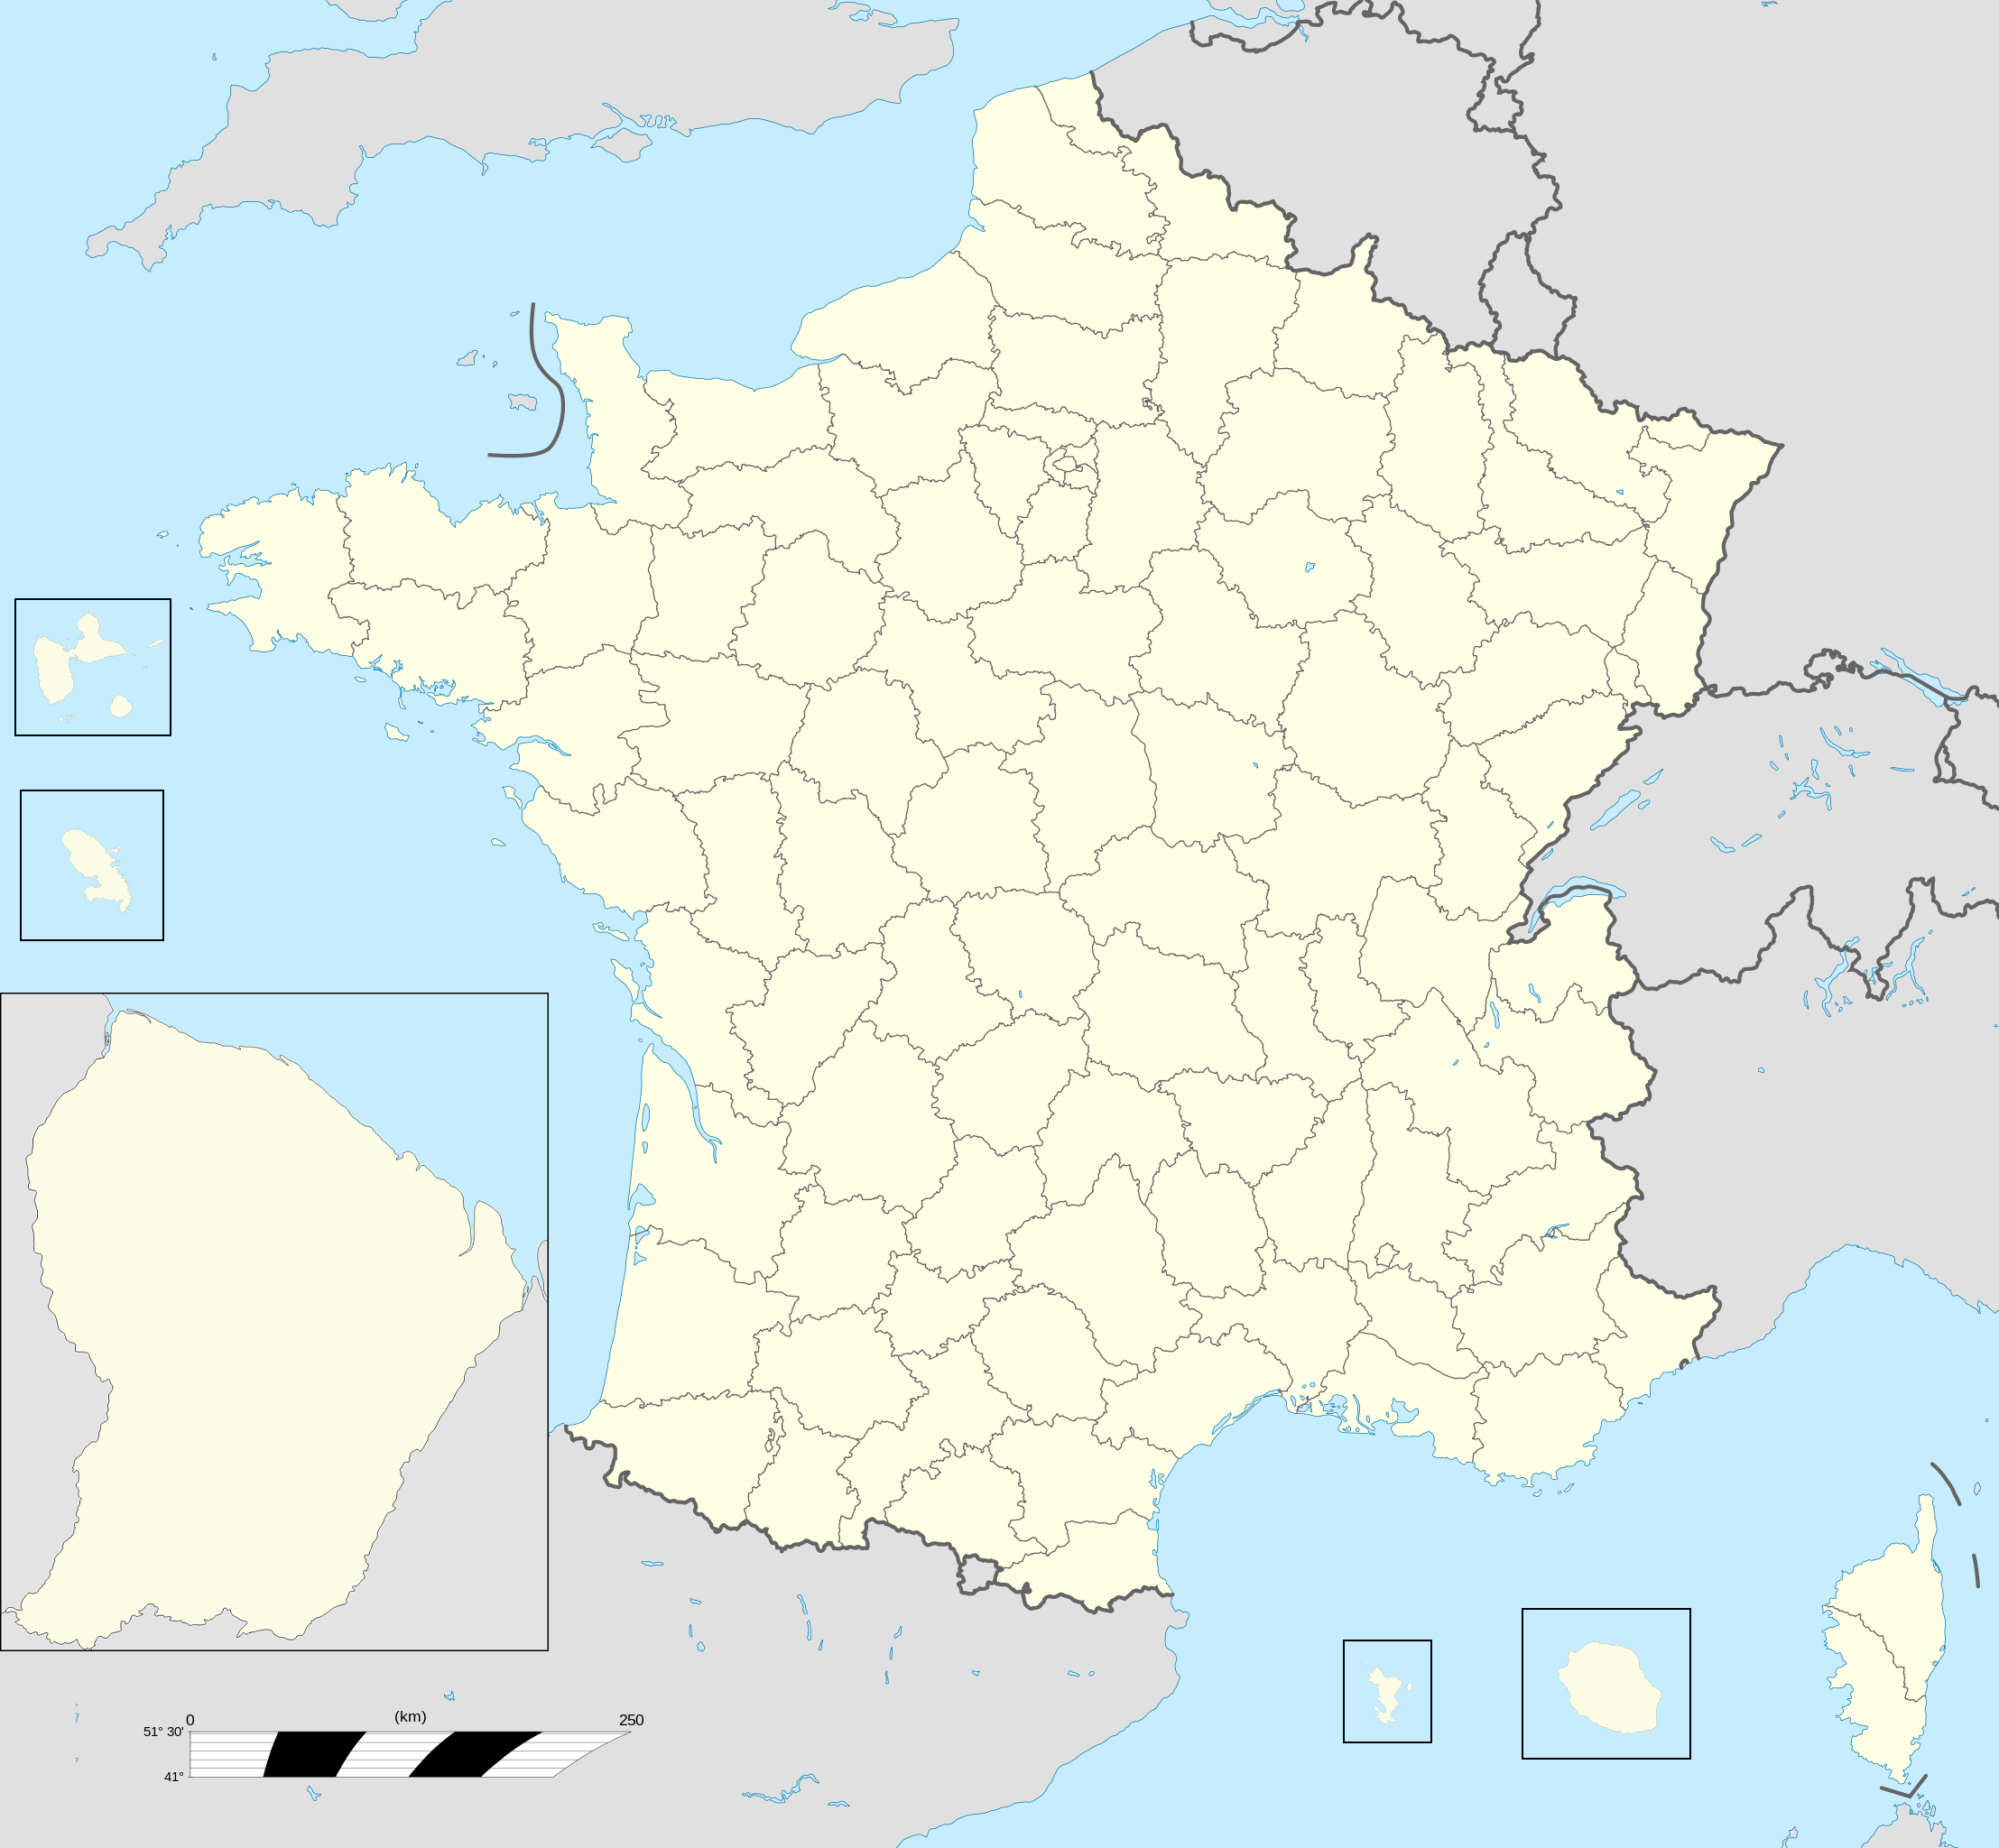 File:france Fond De Carte 101 Départements - Wikimedia dedans Carte De France Des Départements